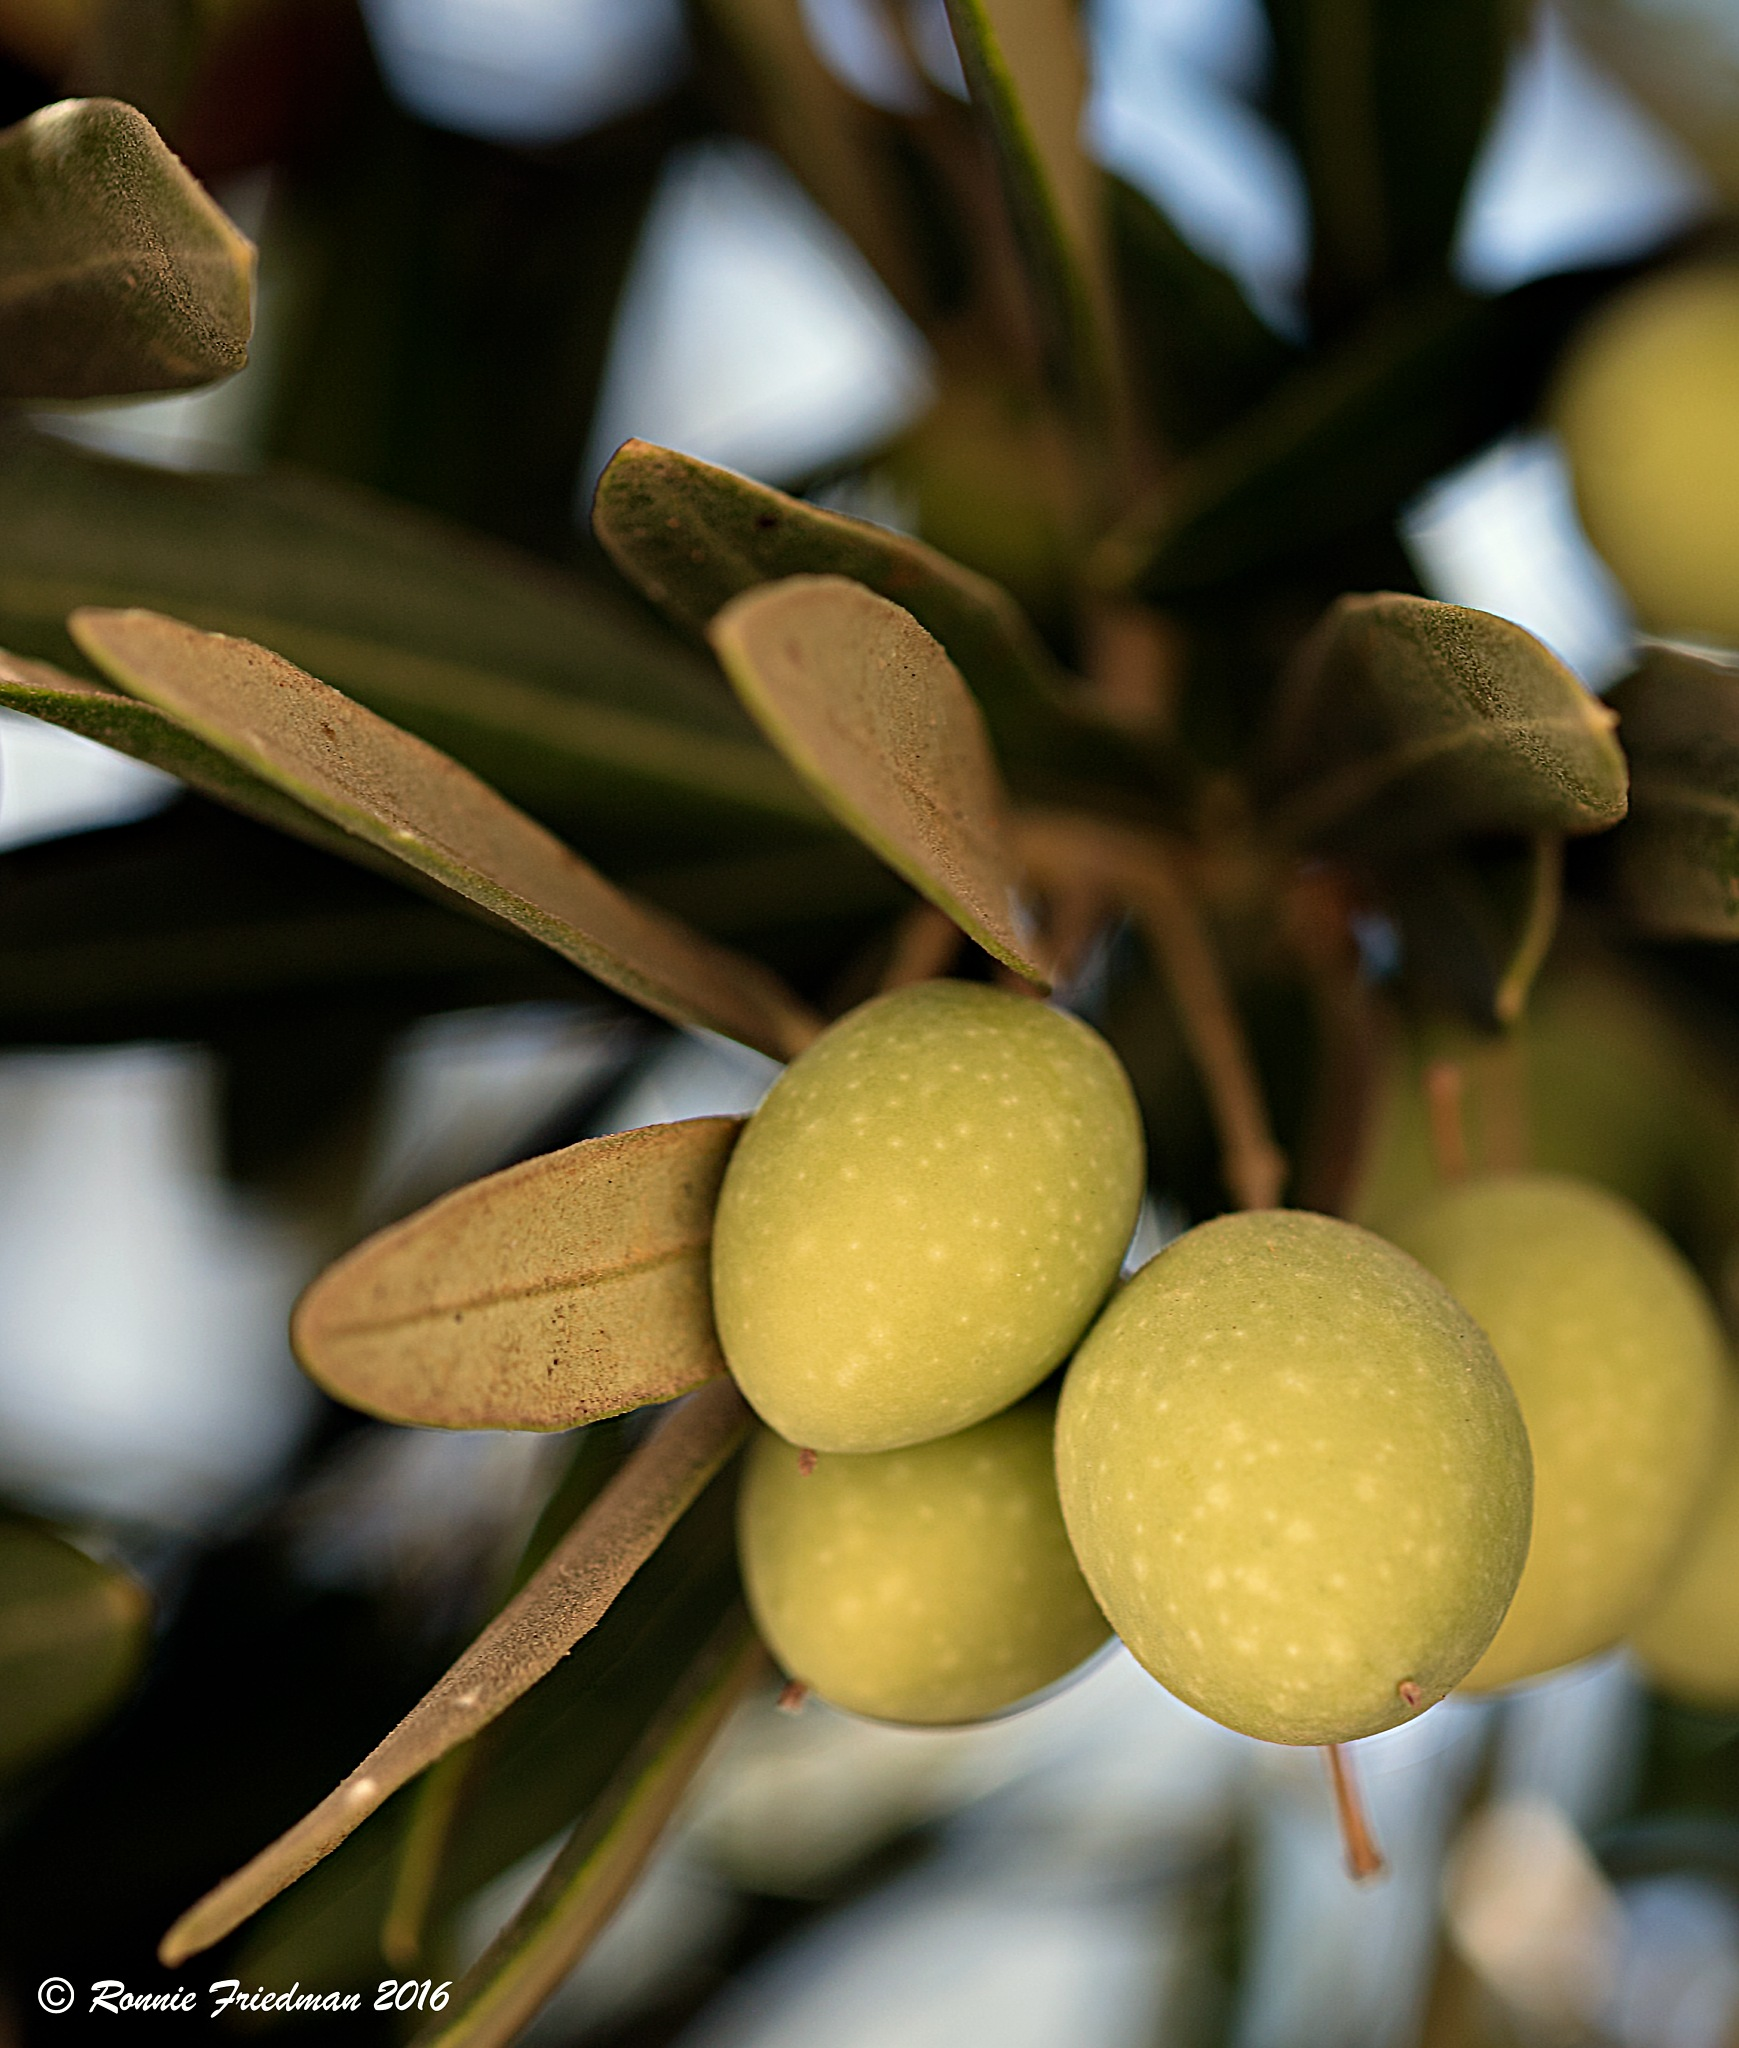 Olives by Ronnie Friedman